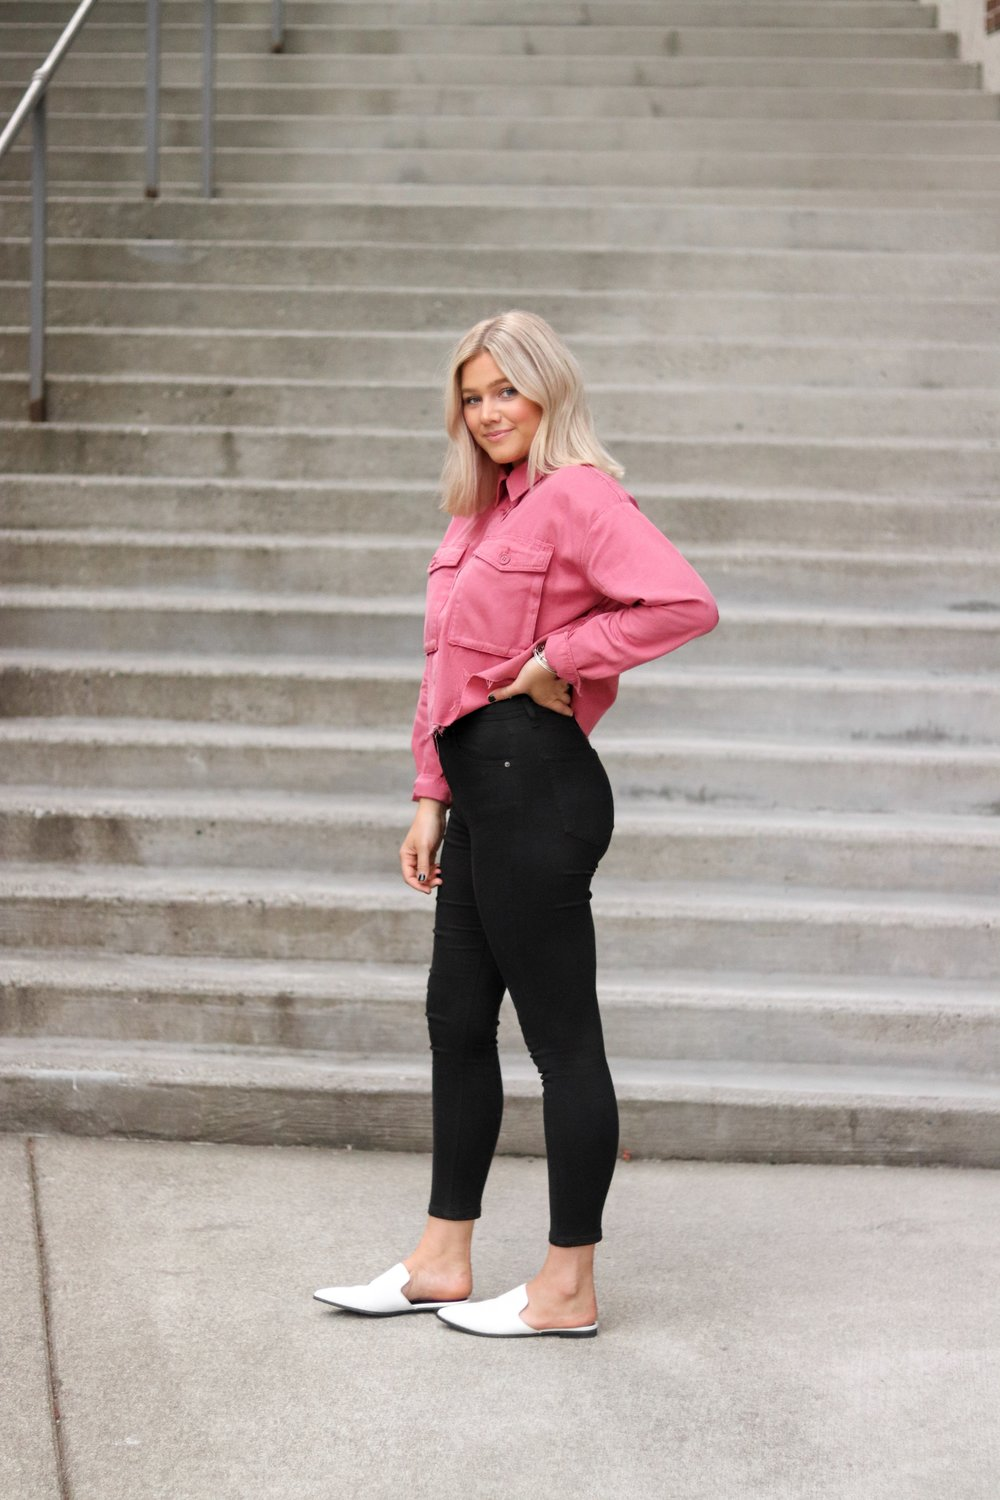 Casual Cool Under $75 With Nordstrom - Bre Sheppard 5.JPG